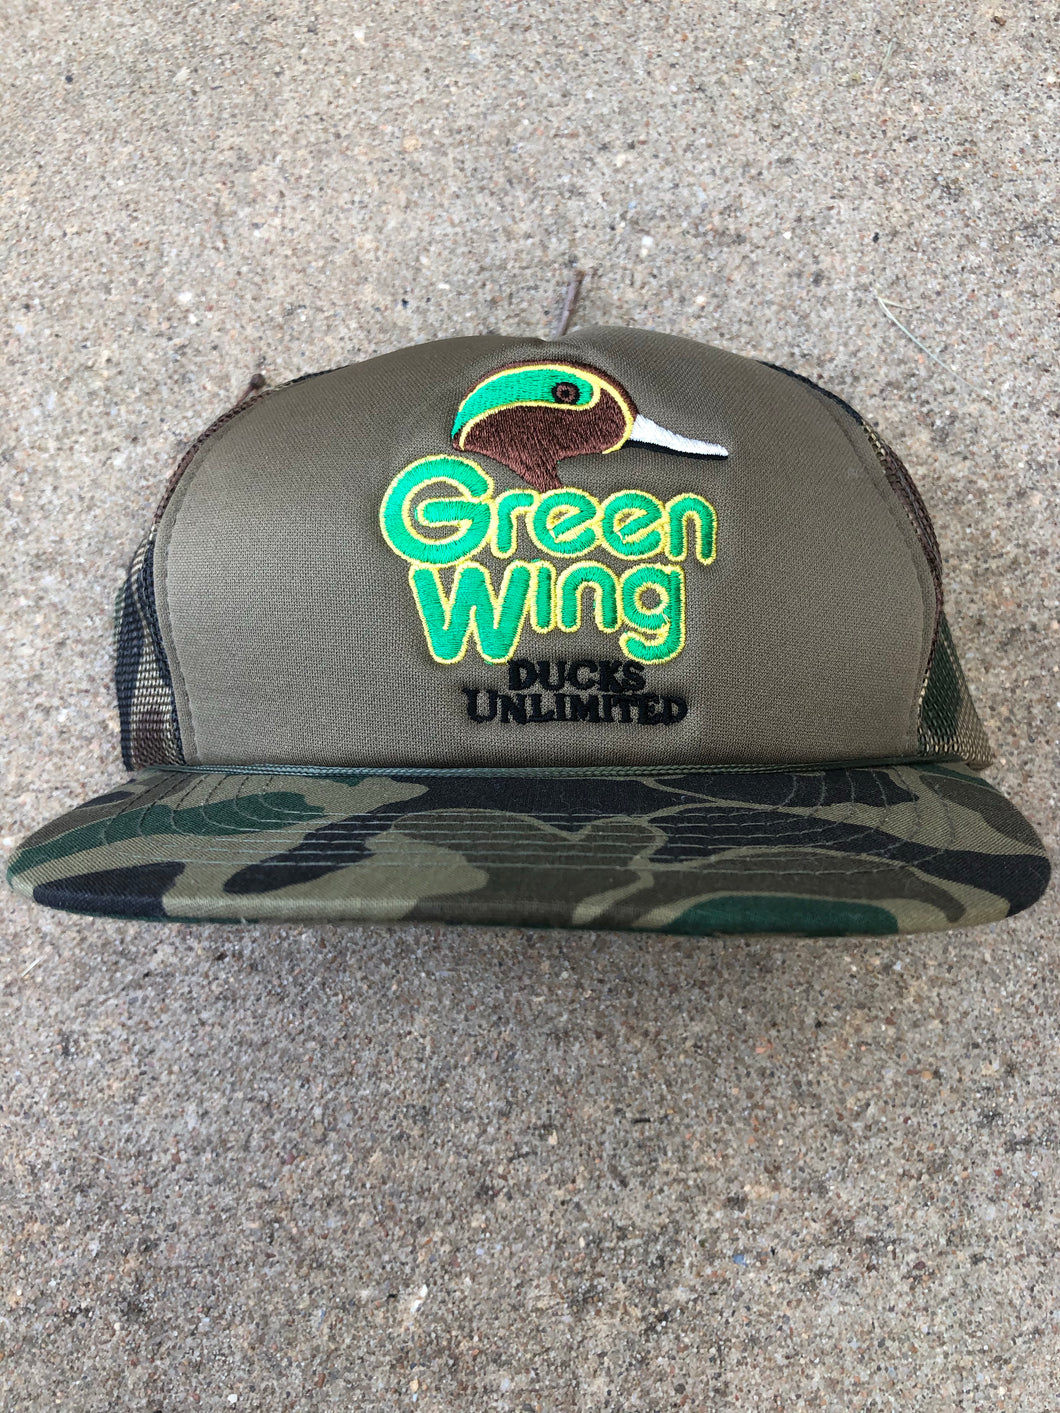 Ducks Unlimited Greenwing Snapback